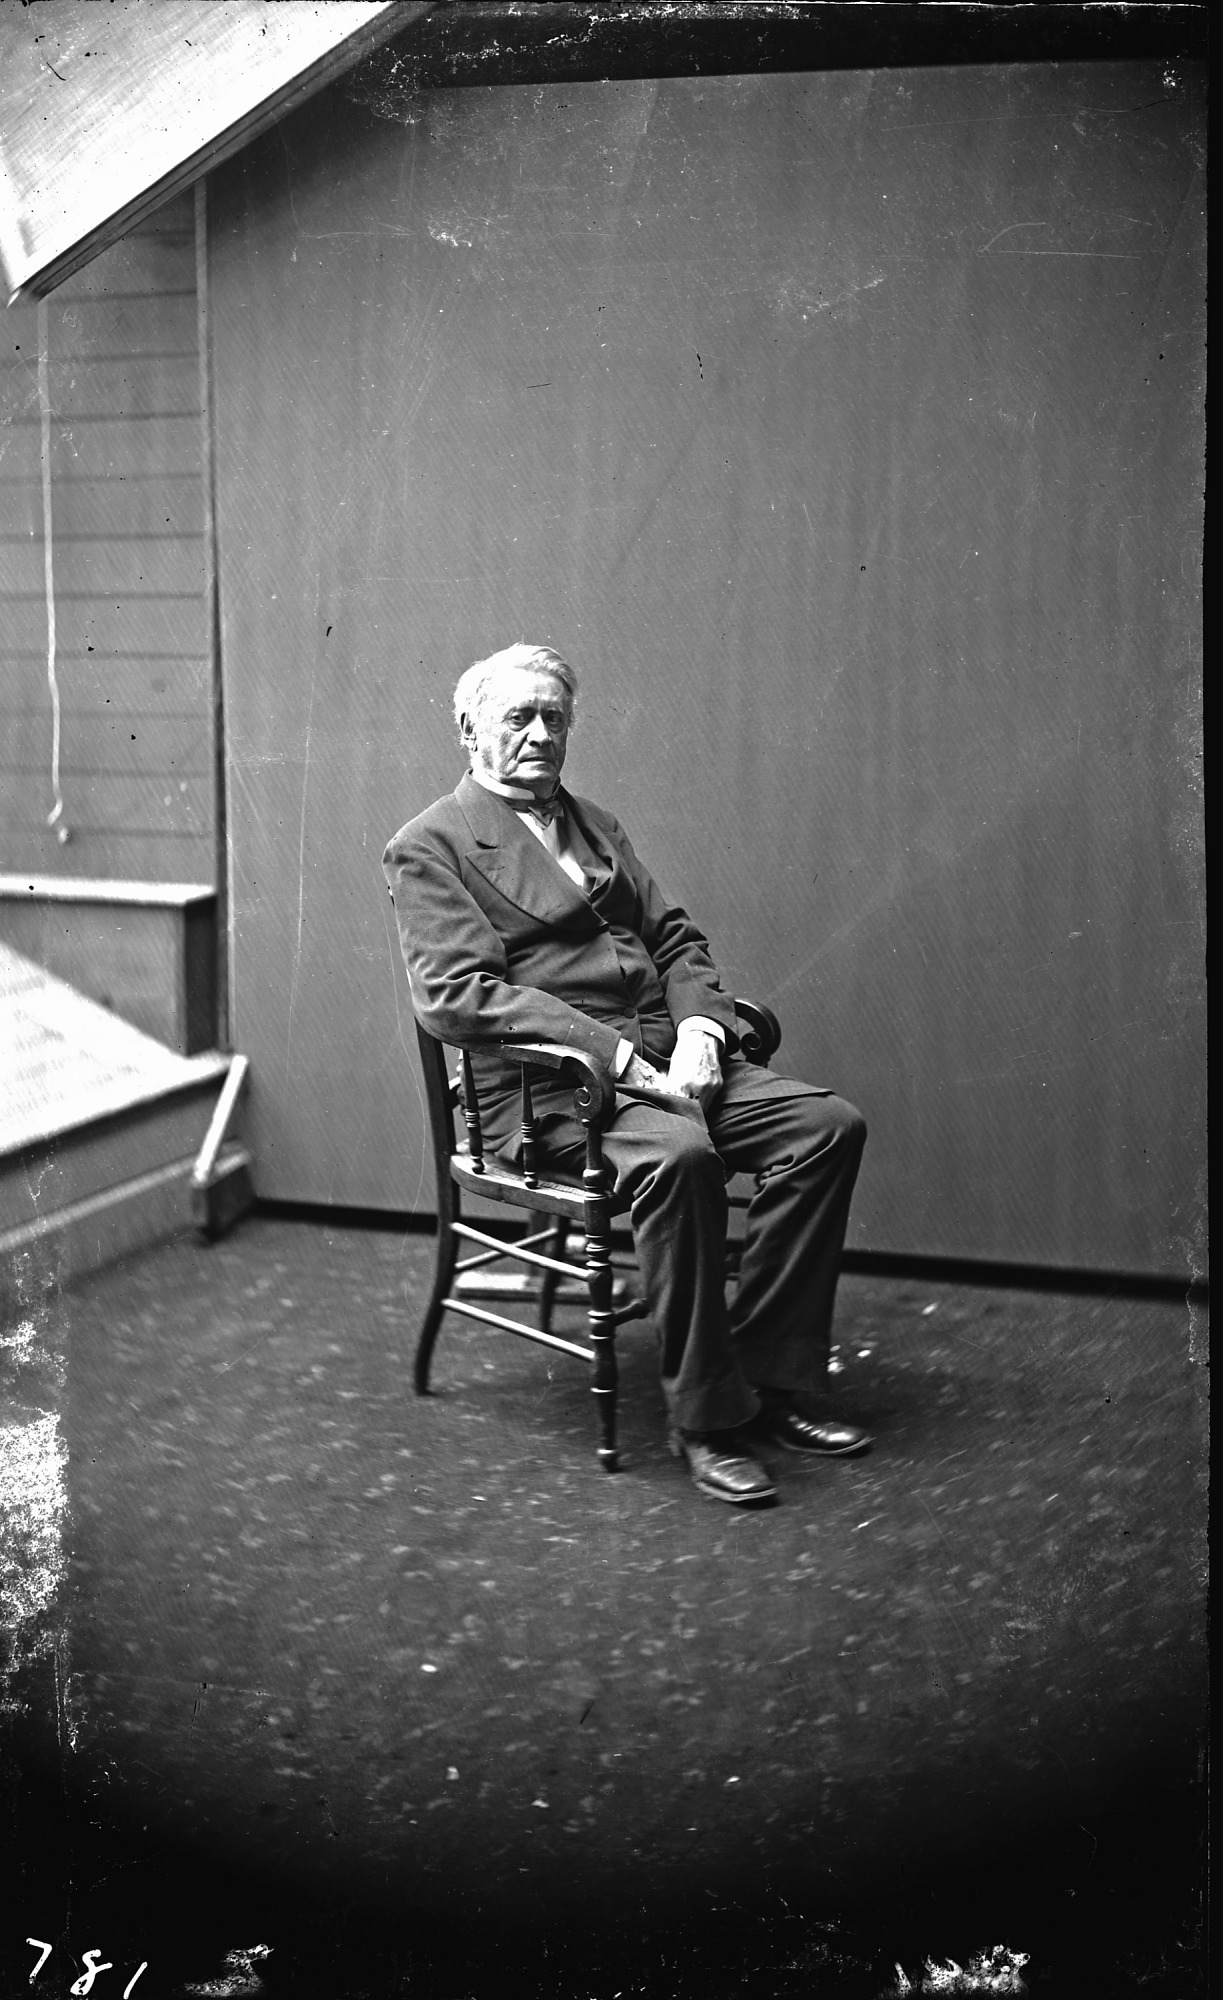 Joseph Henry (1797-1878), physicist and first Secretary of the Smithsonian Institution from 1846 to 1878, seated in a chair, c. 1870s. Smithsonian Institution Archives, negative number mah-781